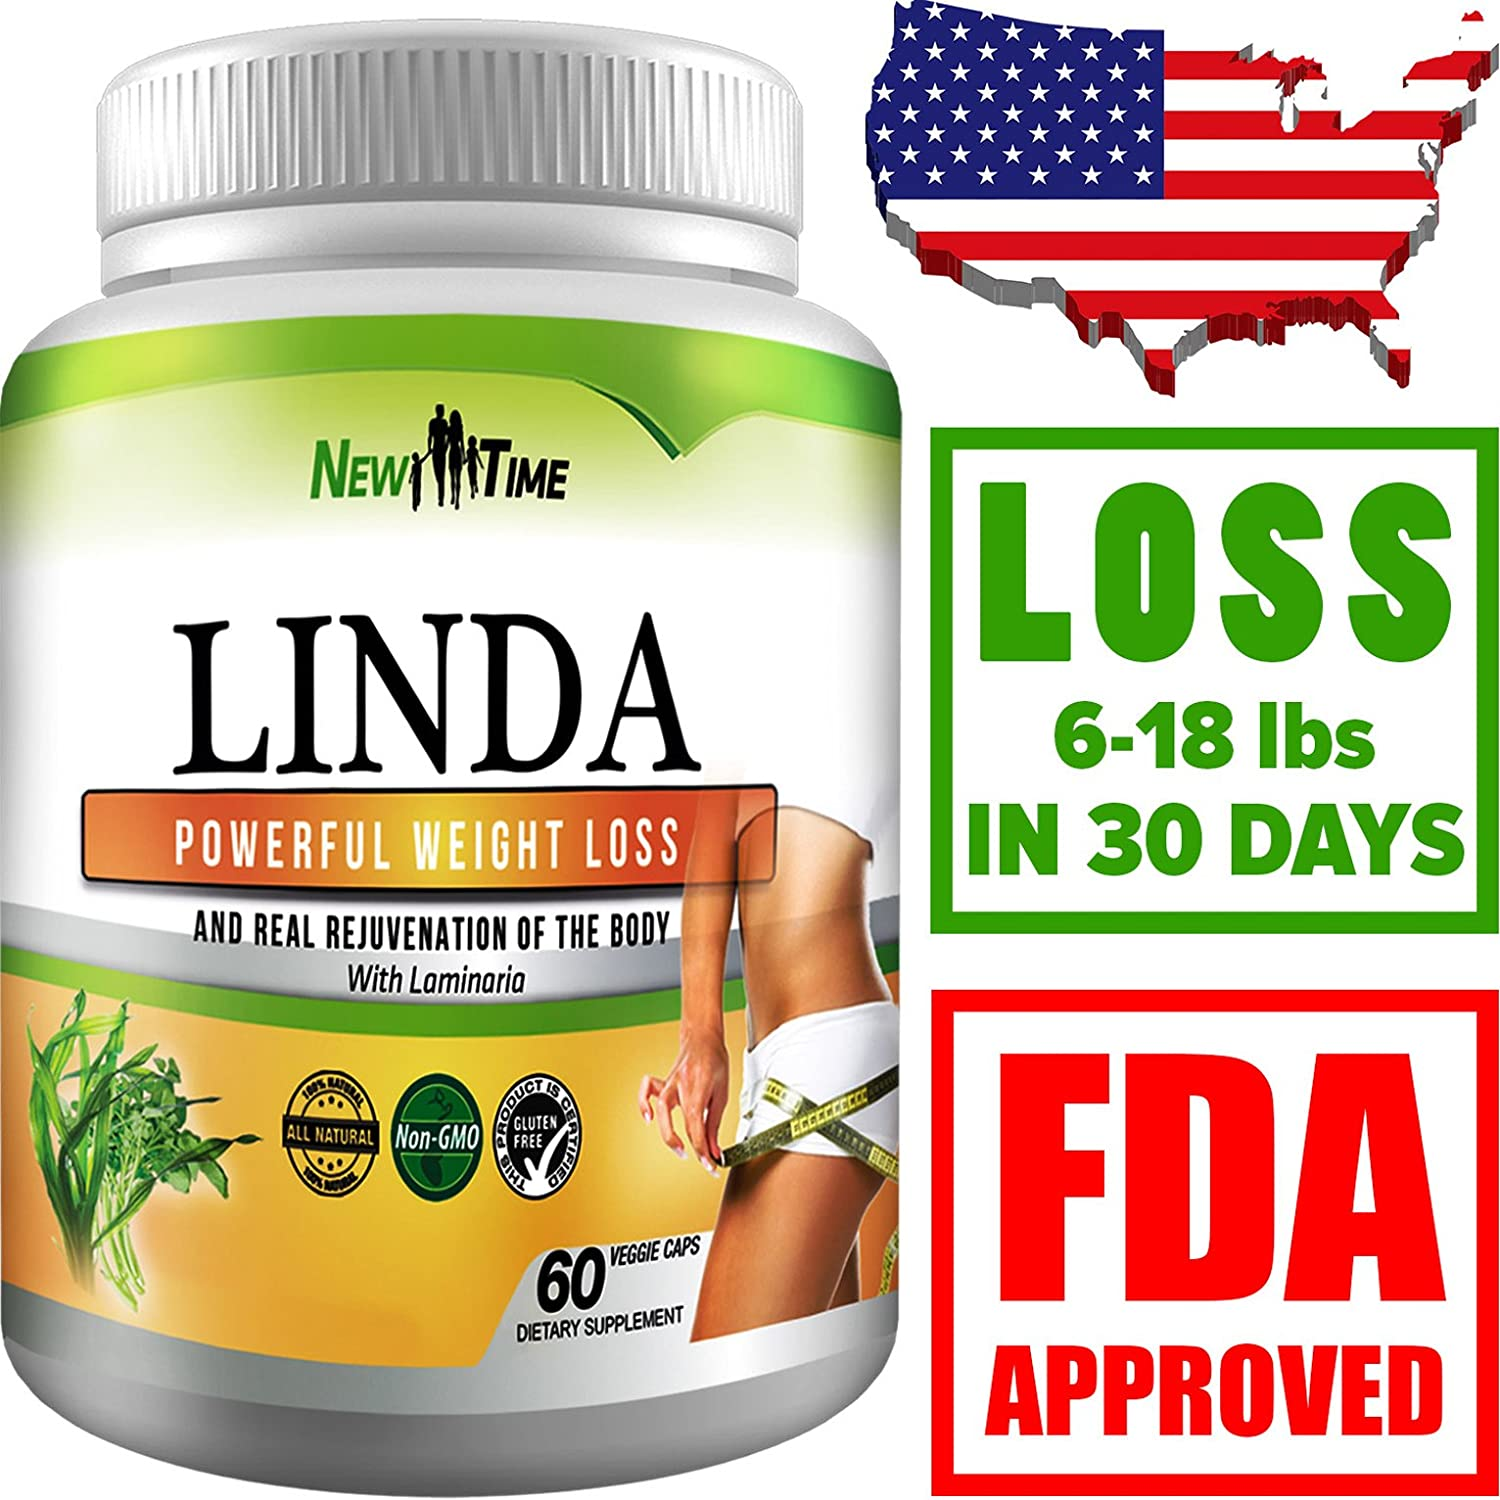 Common ingredients in weight loss pills